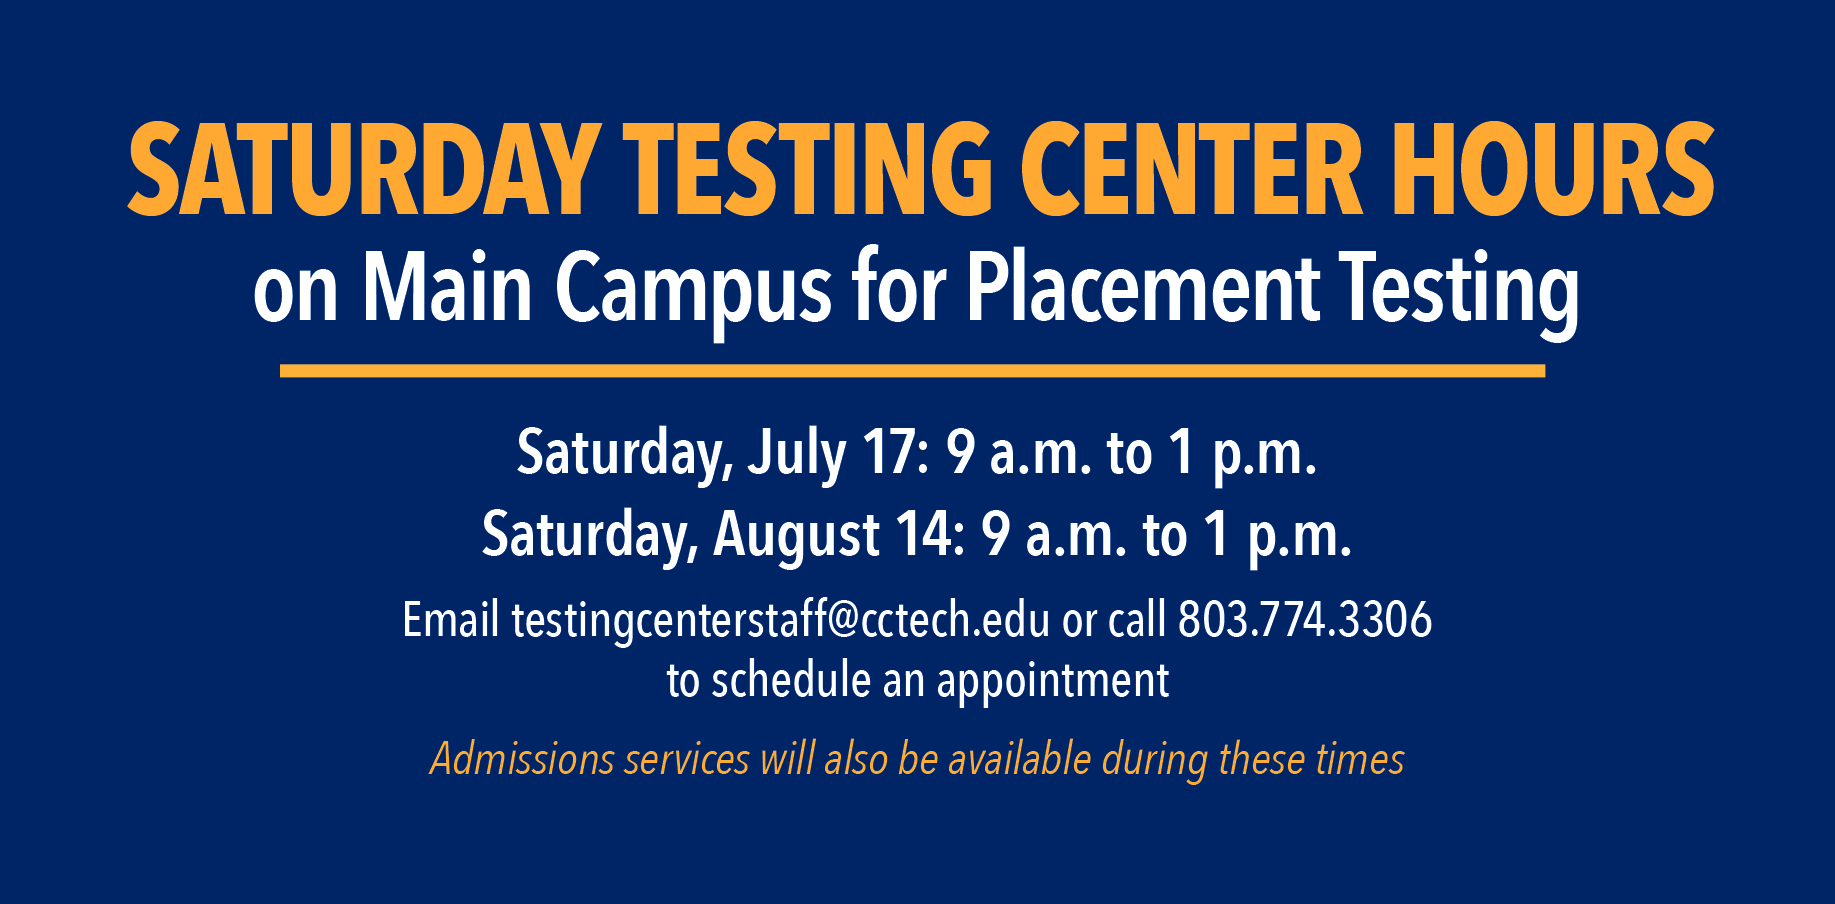 Saturday testing center hours